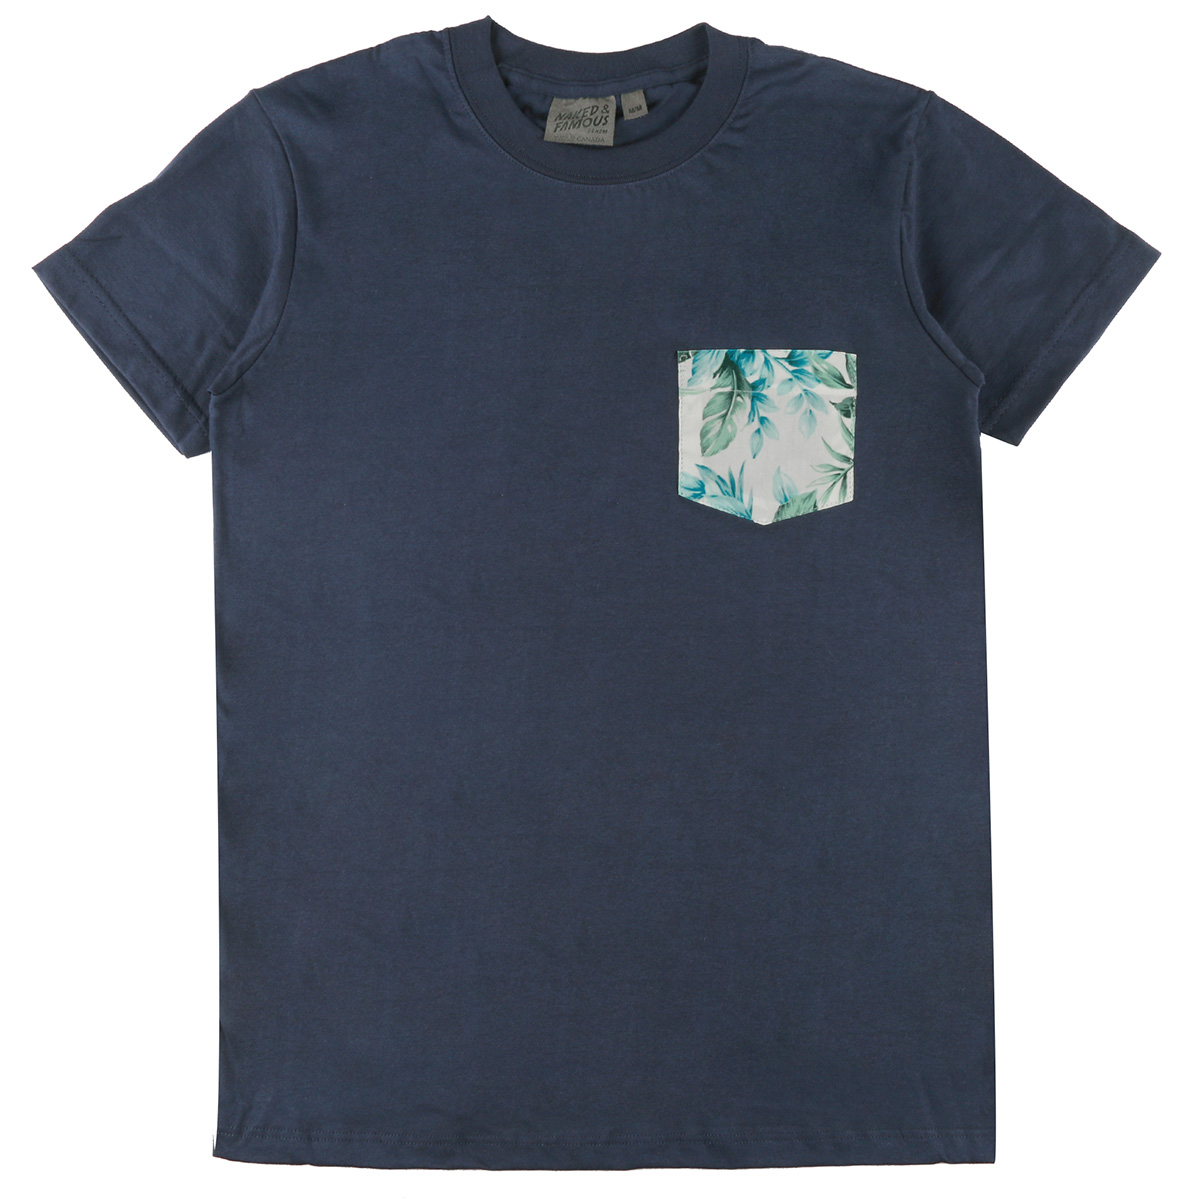 NAVY + BIG TROPICAL - Pocket Tee